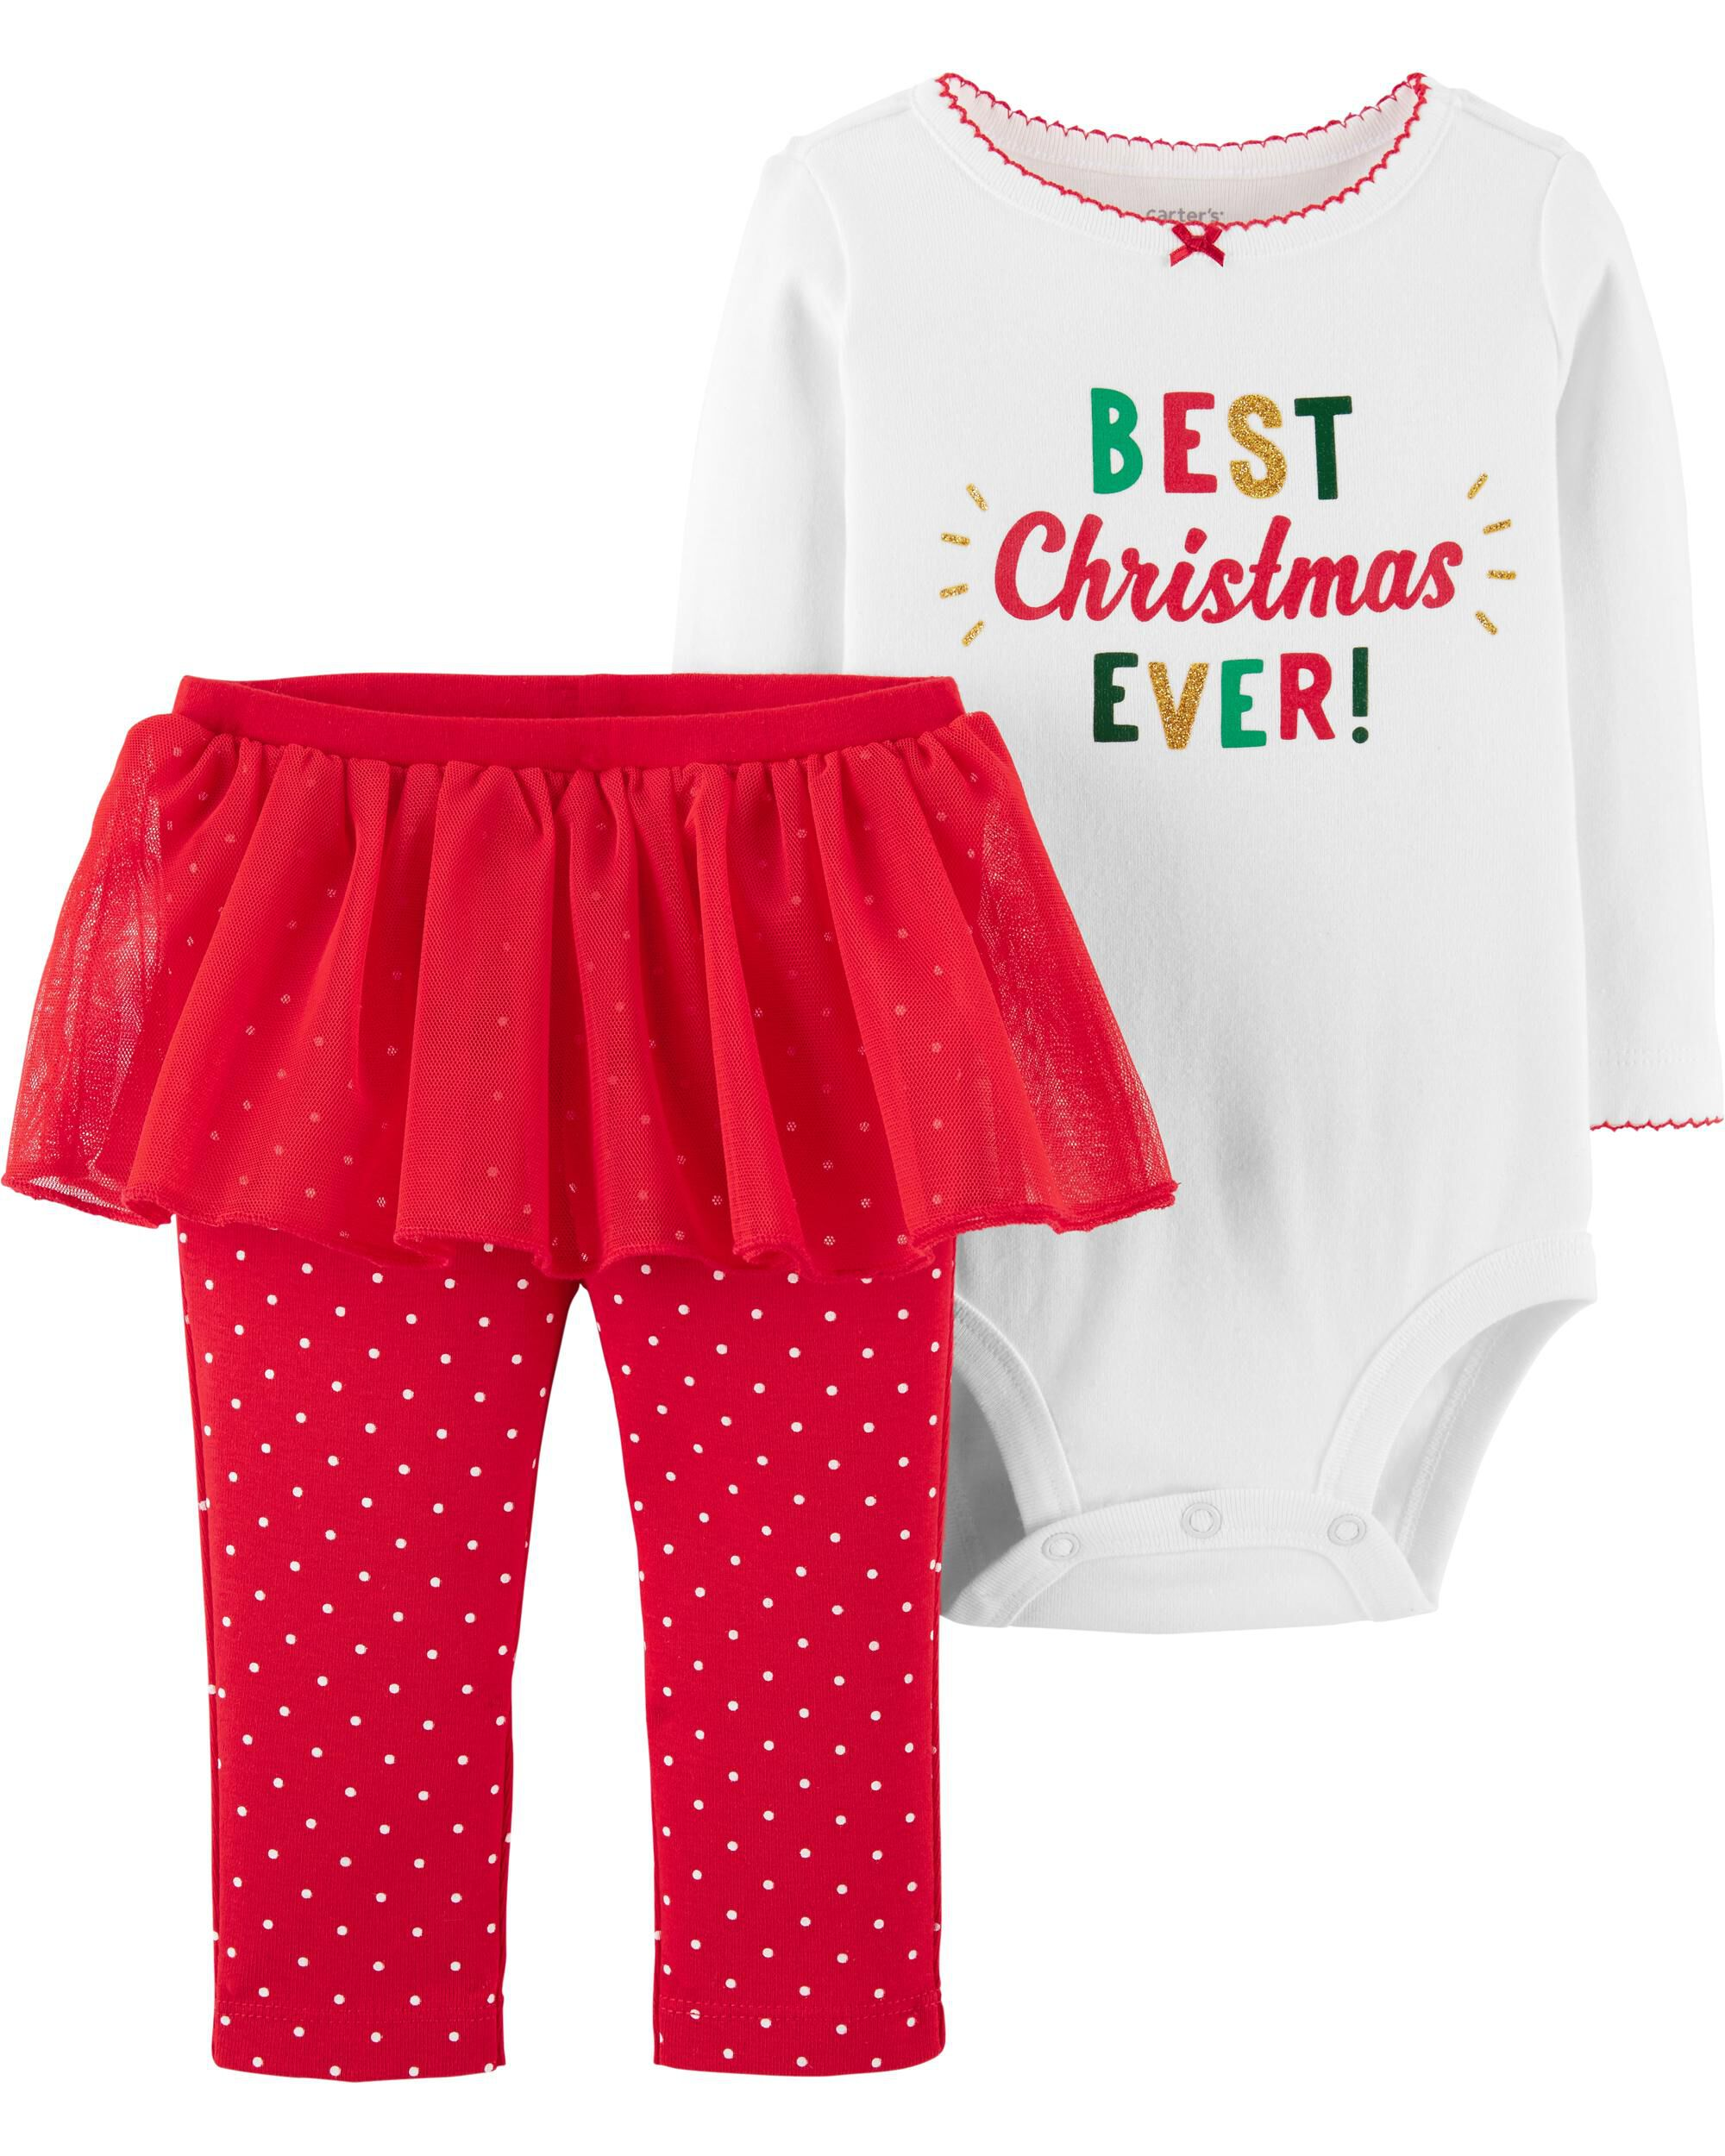 b40abdb14f244 Carters Baby Girls Striped Pocket Tank Top Holiday Gifts